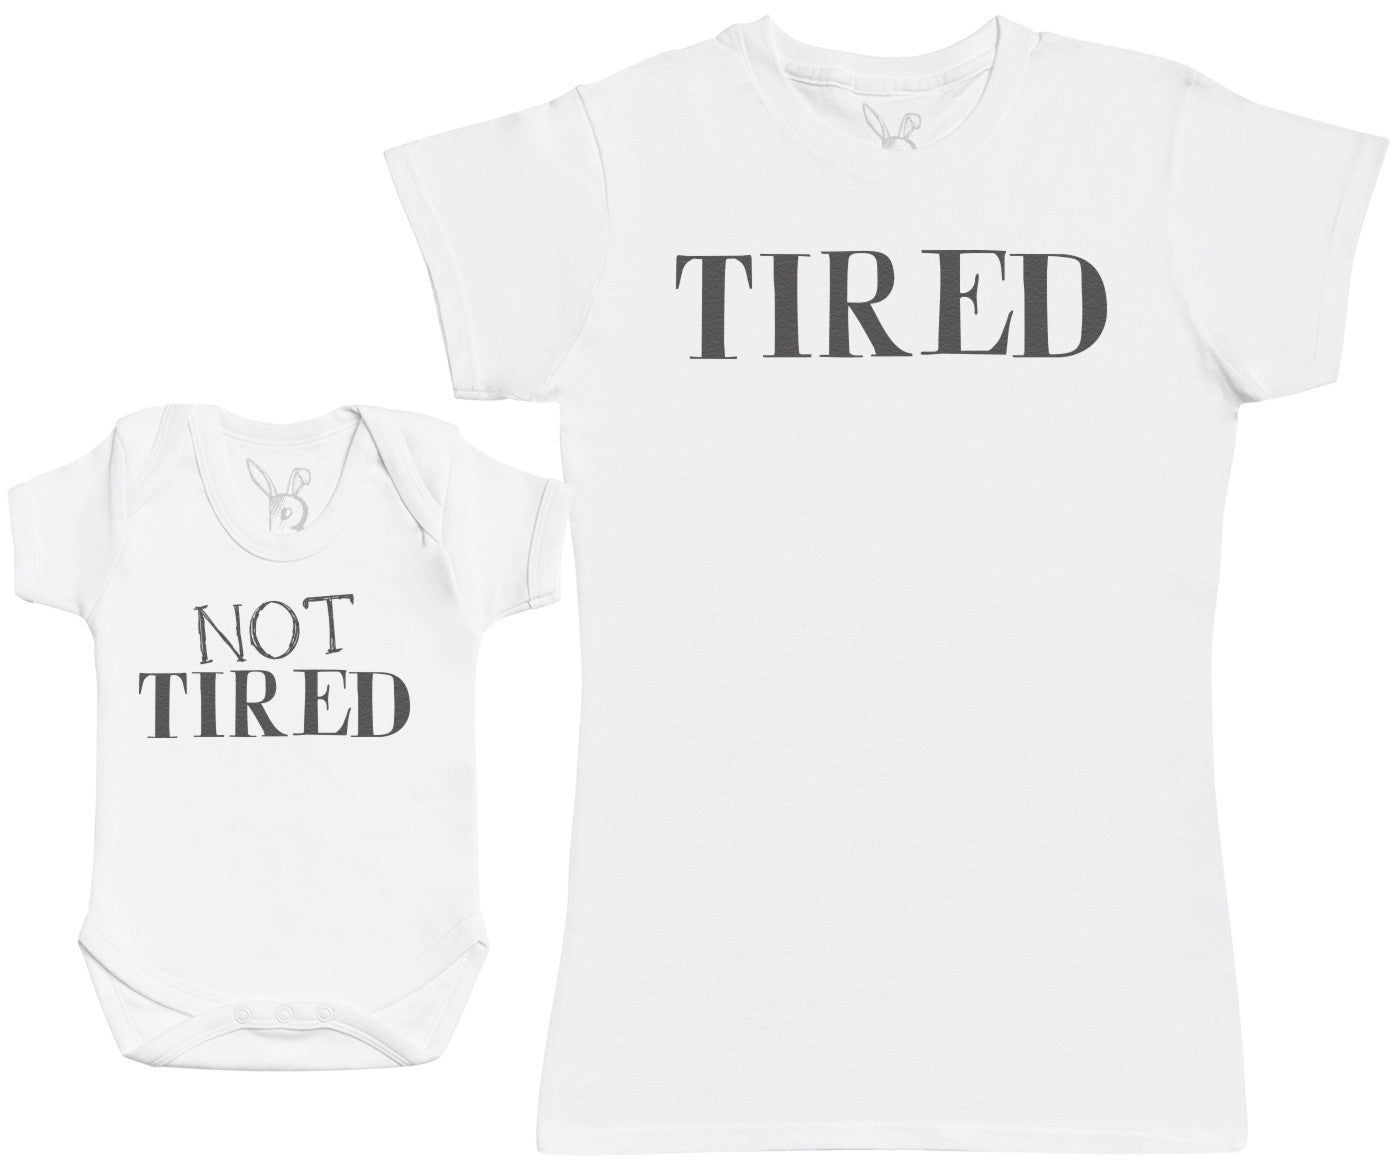 Not Tired & Tired - Baby Gift Set with Baby Bodysuit & Mother's T-Shirt